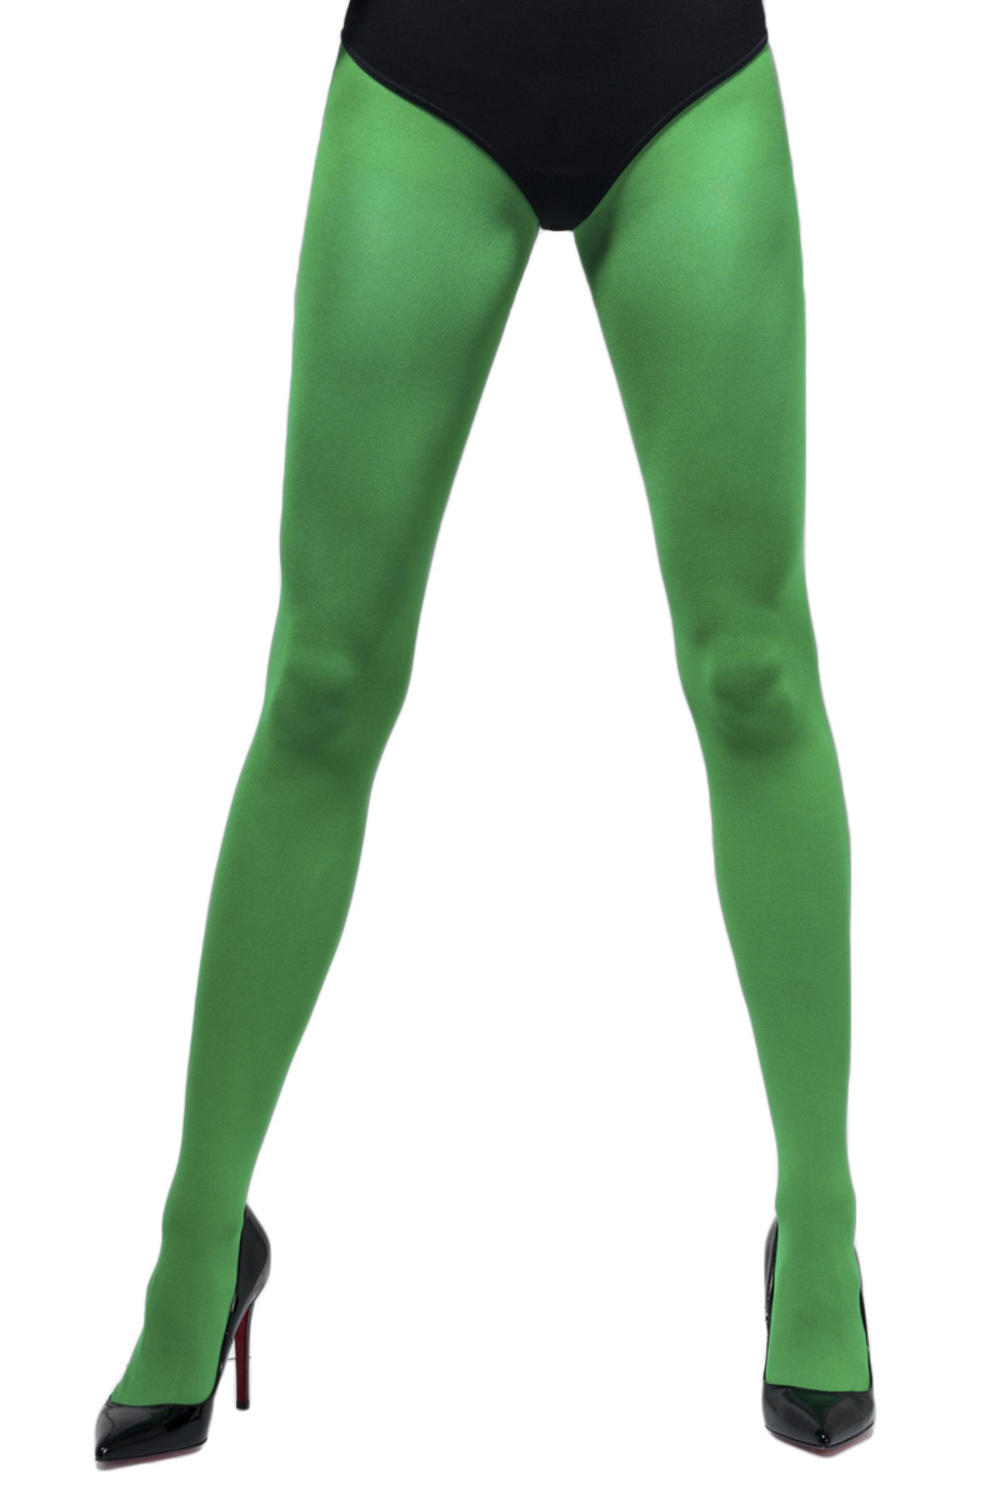 Green Opaque Ladies Tights